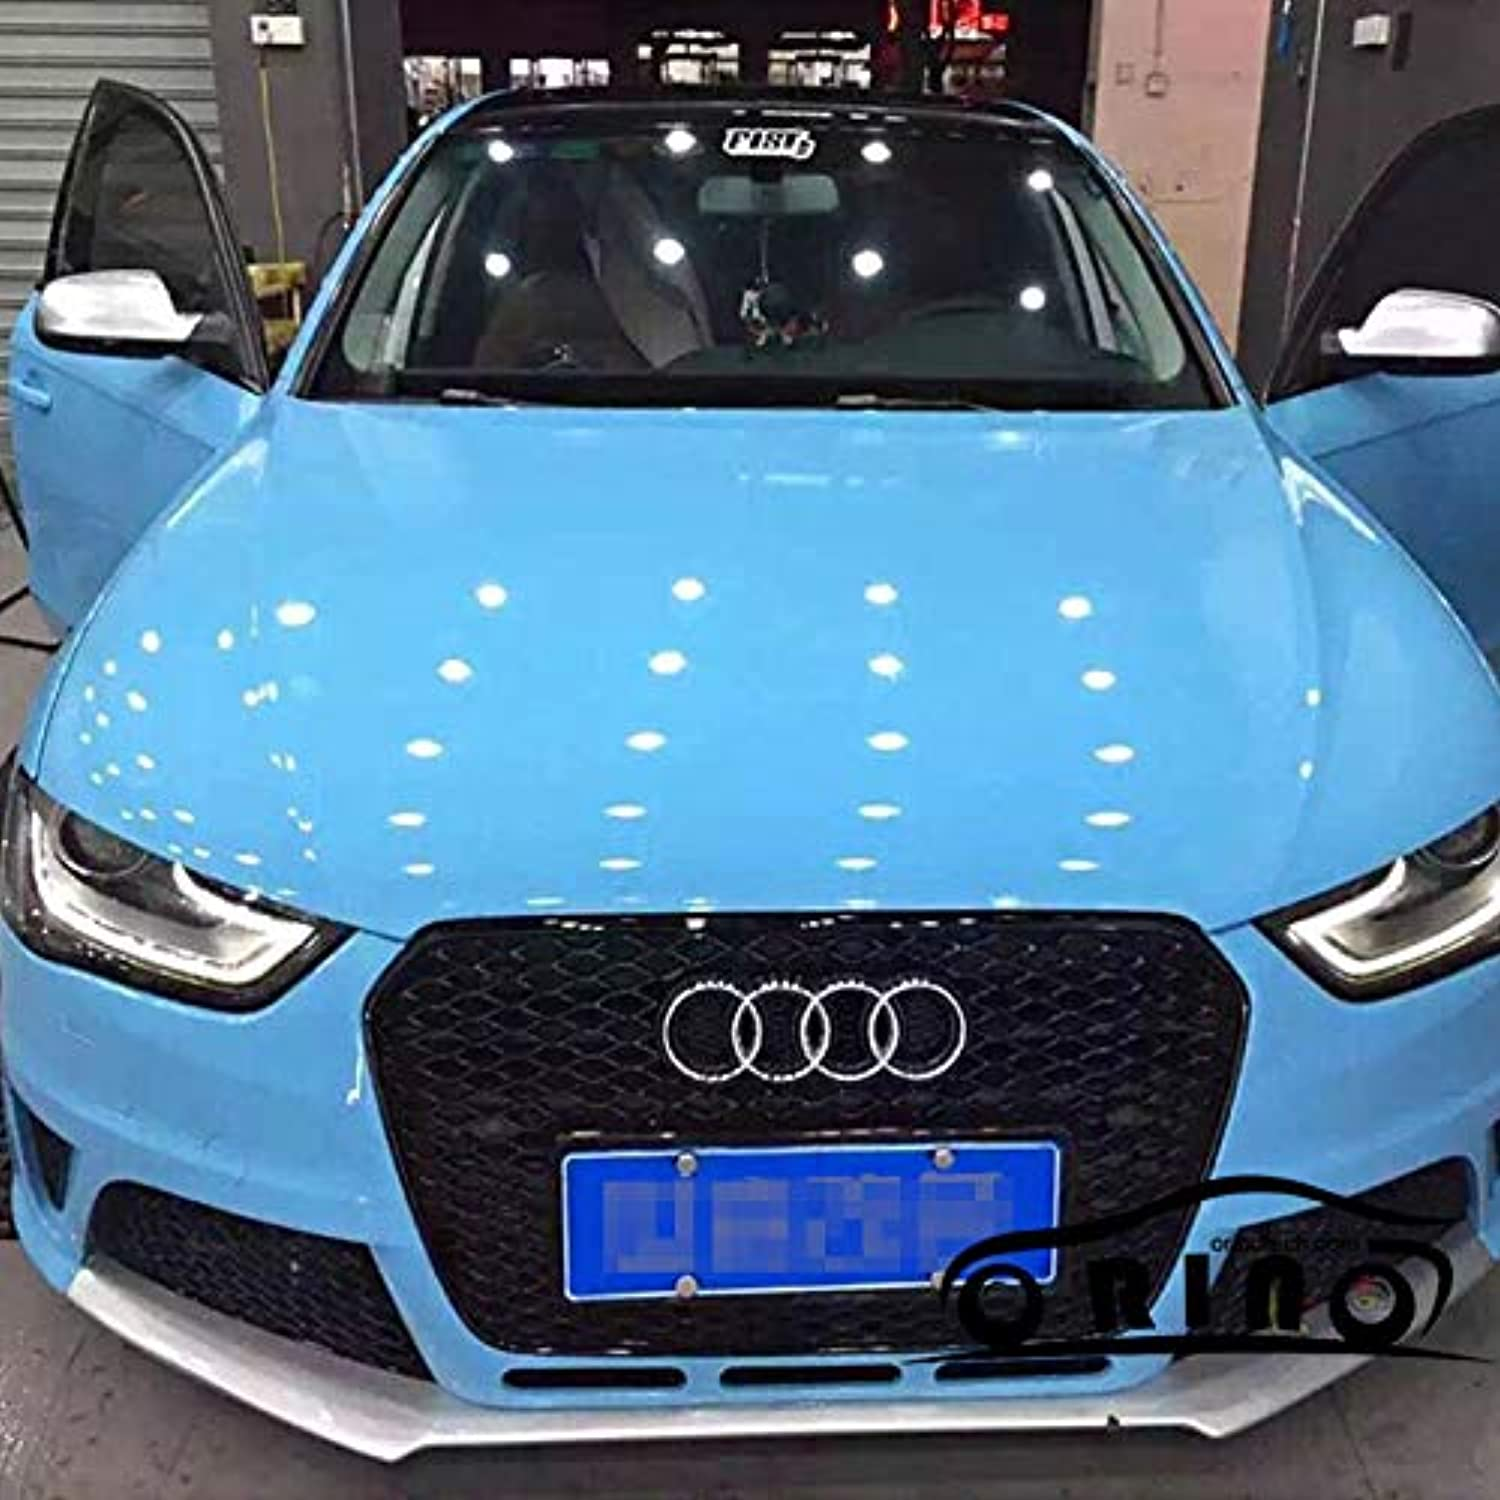 Ultra Shiny Glossy Light blueee Vinyl Wrap 3 Layers High Gloss blueee Car Wrap Film with Air Bubble Free Size 5ft X 65ft Roll